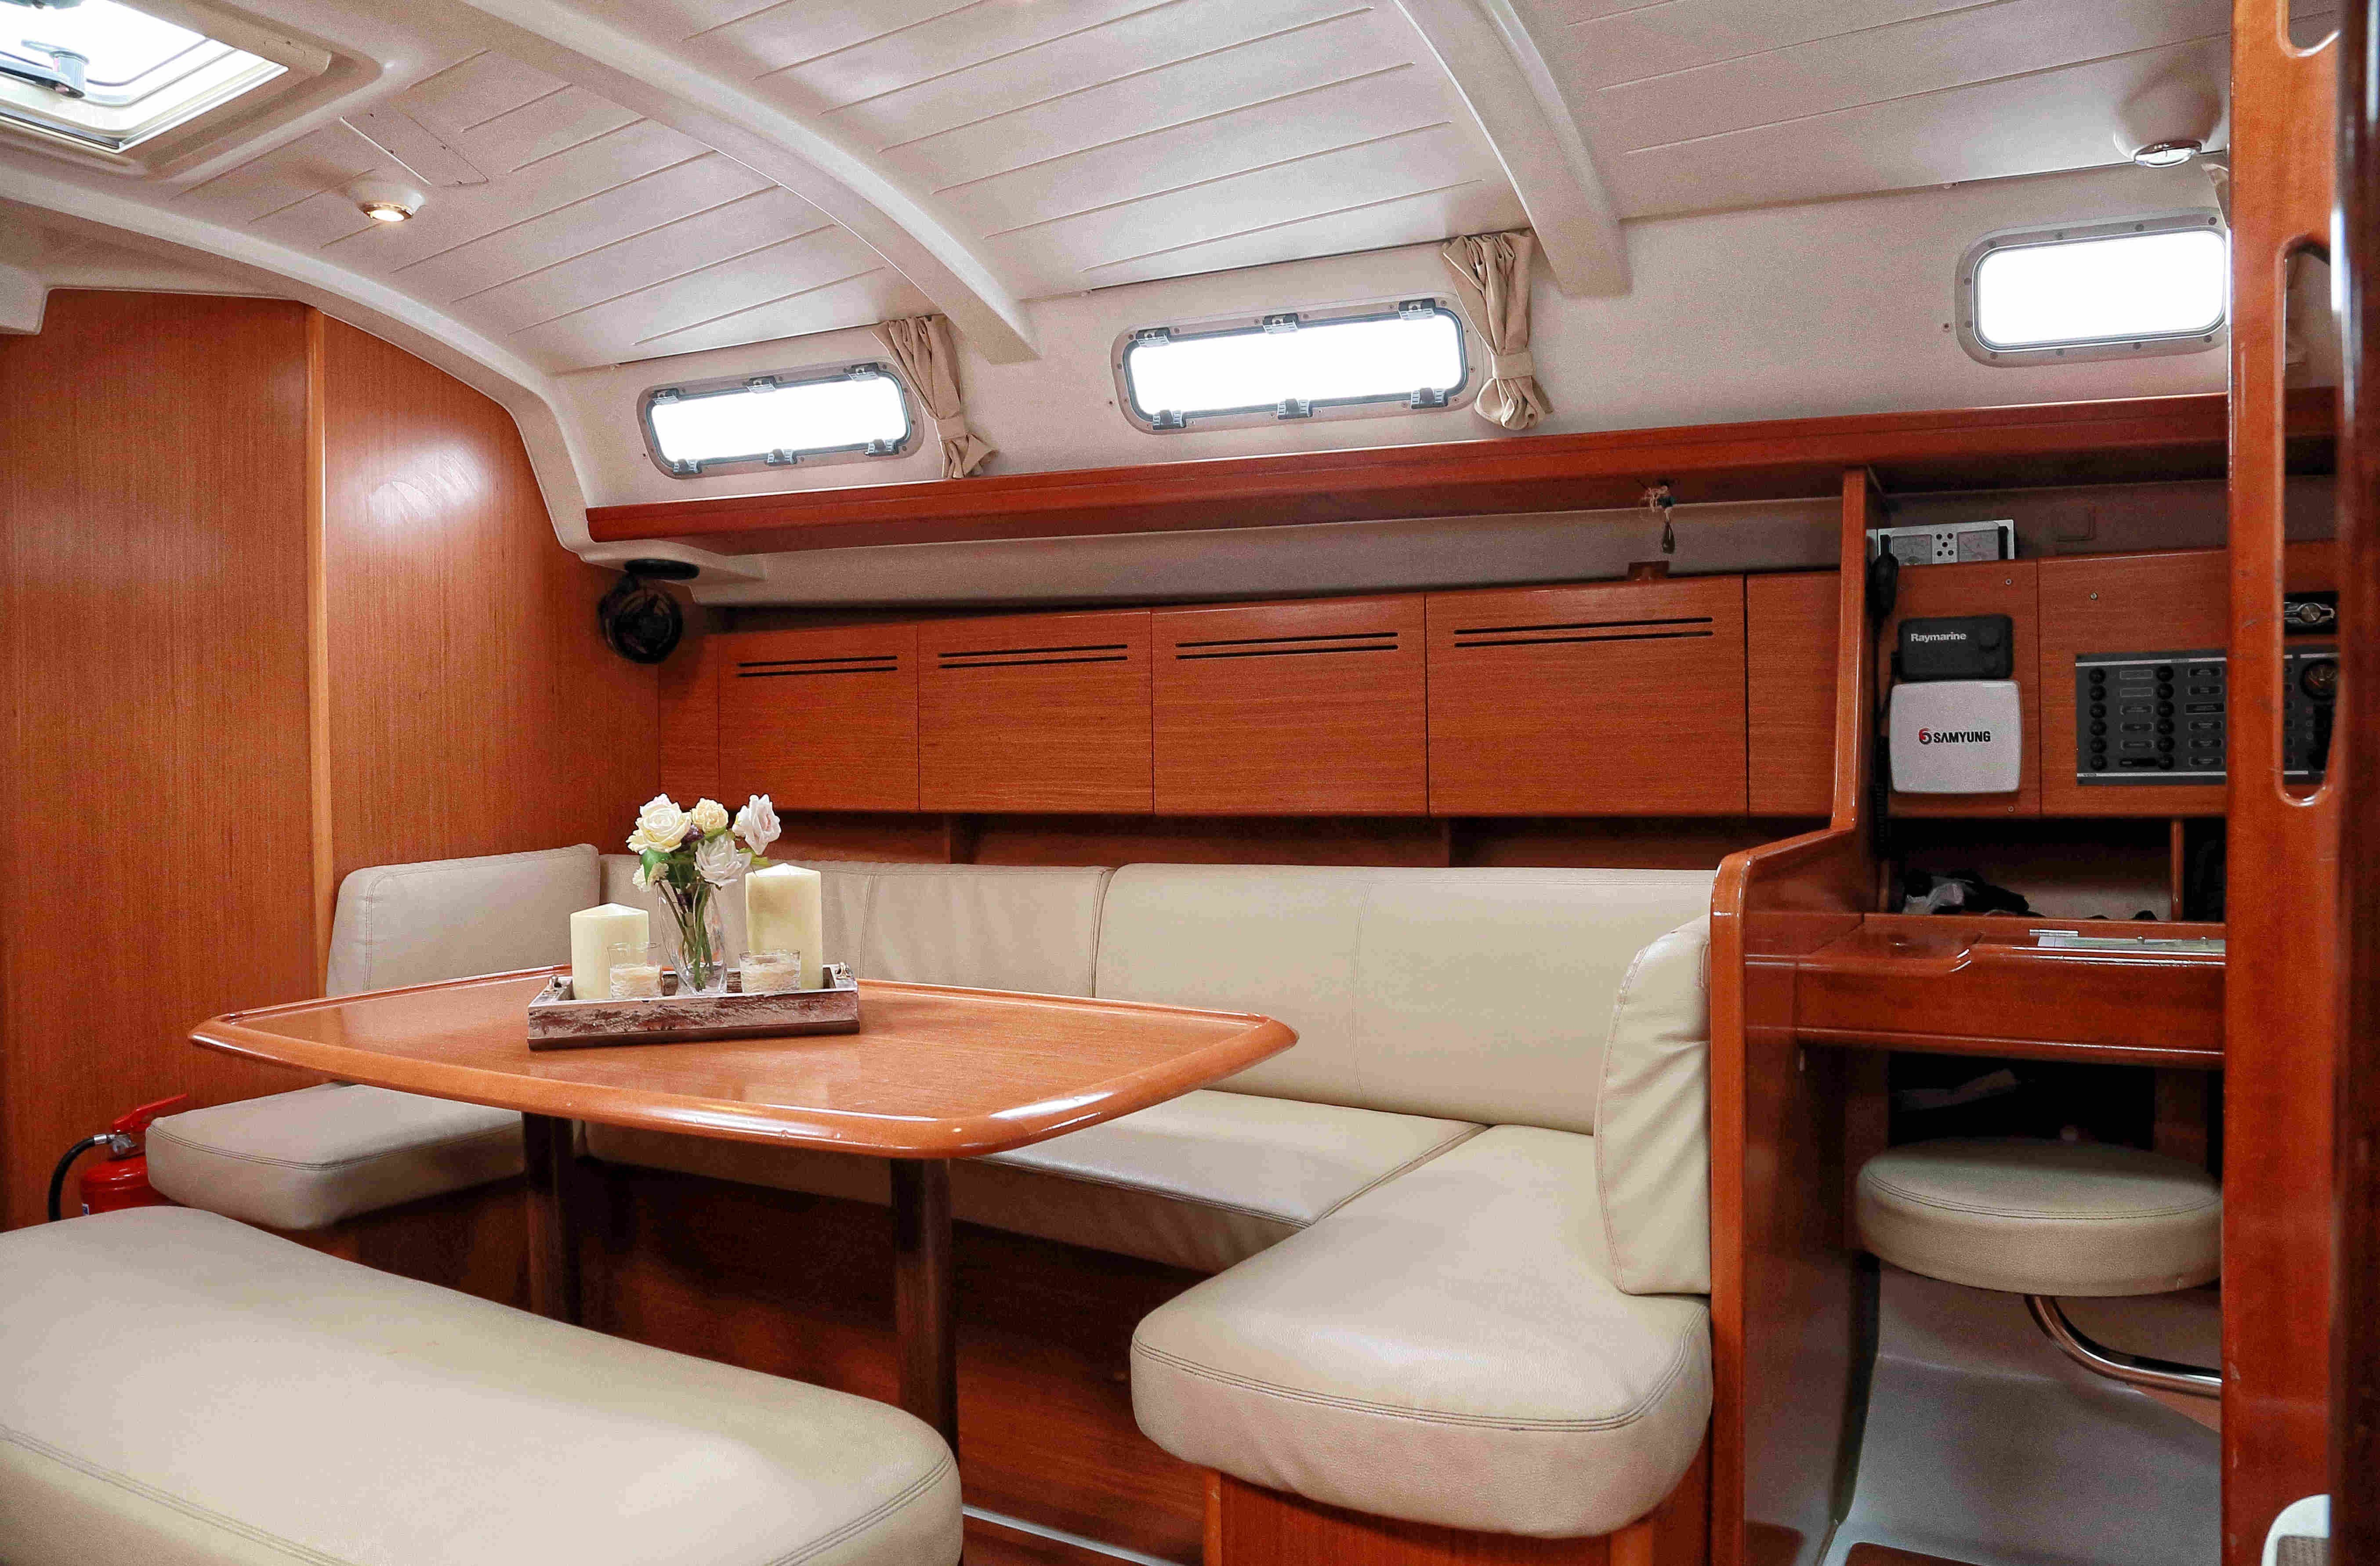 Cyclades 43.4 (Hermes) Interior image - 5